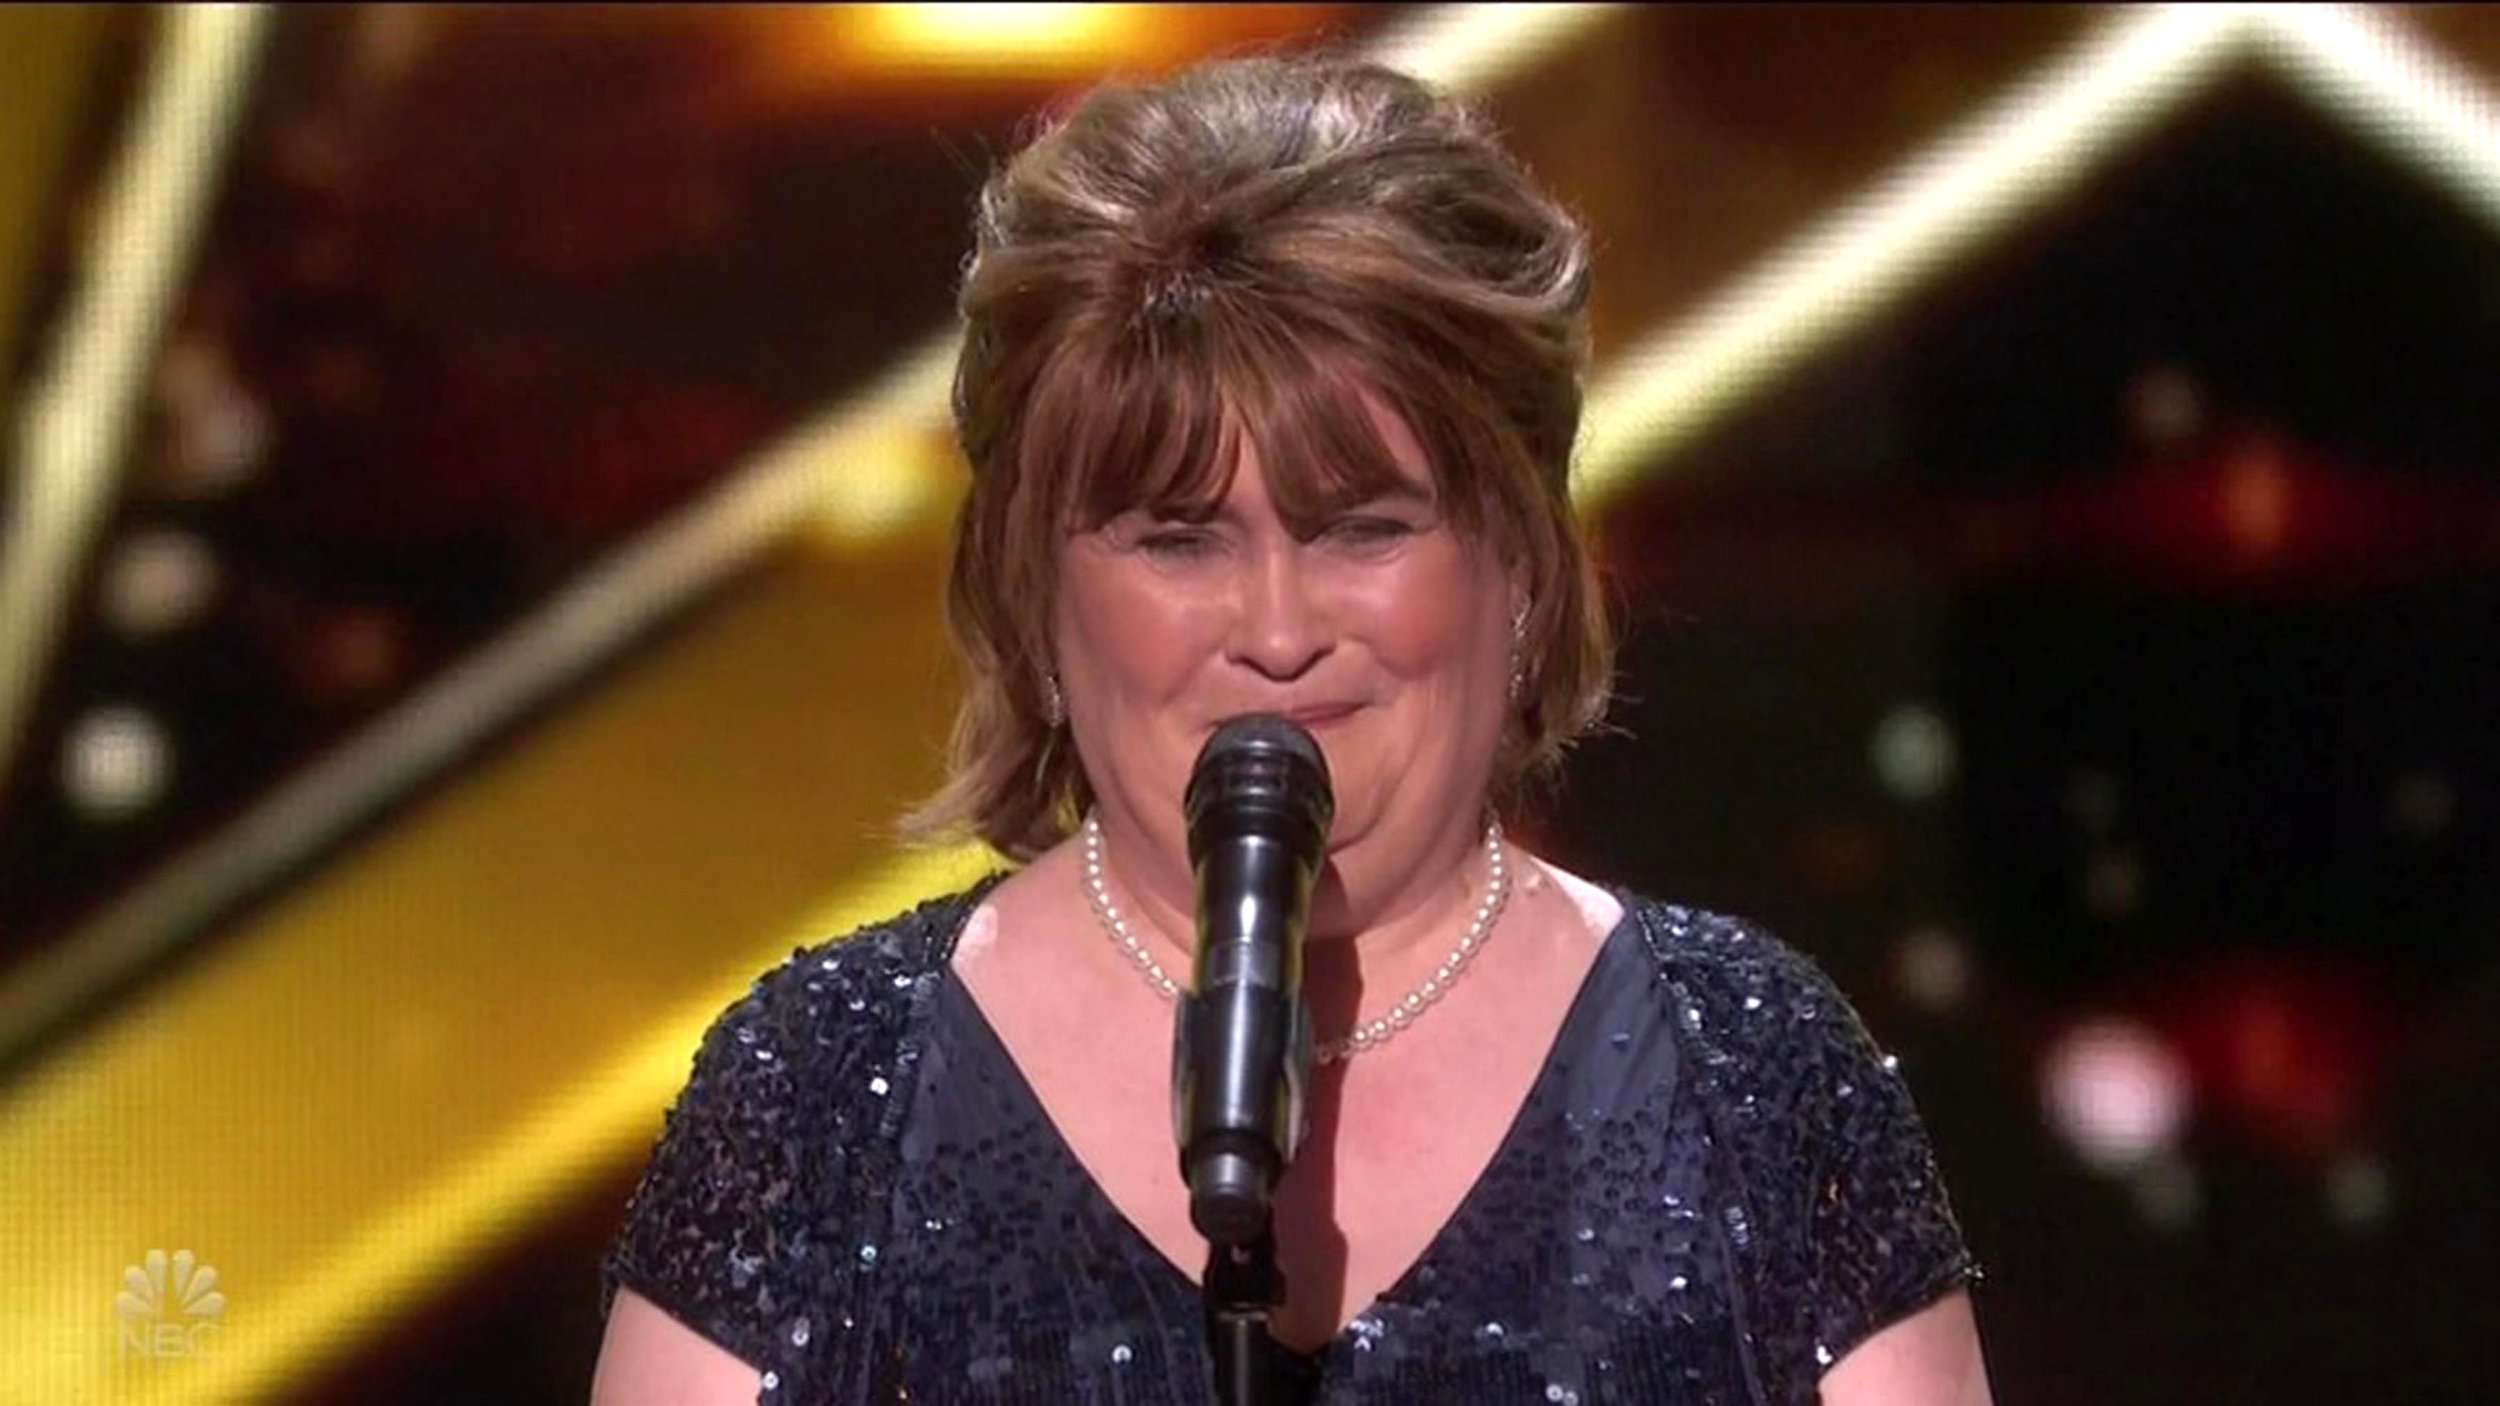 Susan Boyle 'coping better' as she opens up about her mental health since Britain's Got Talent